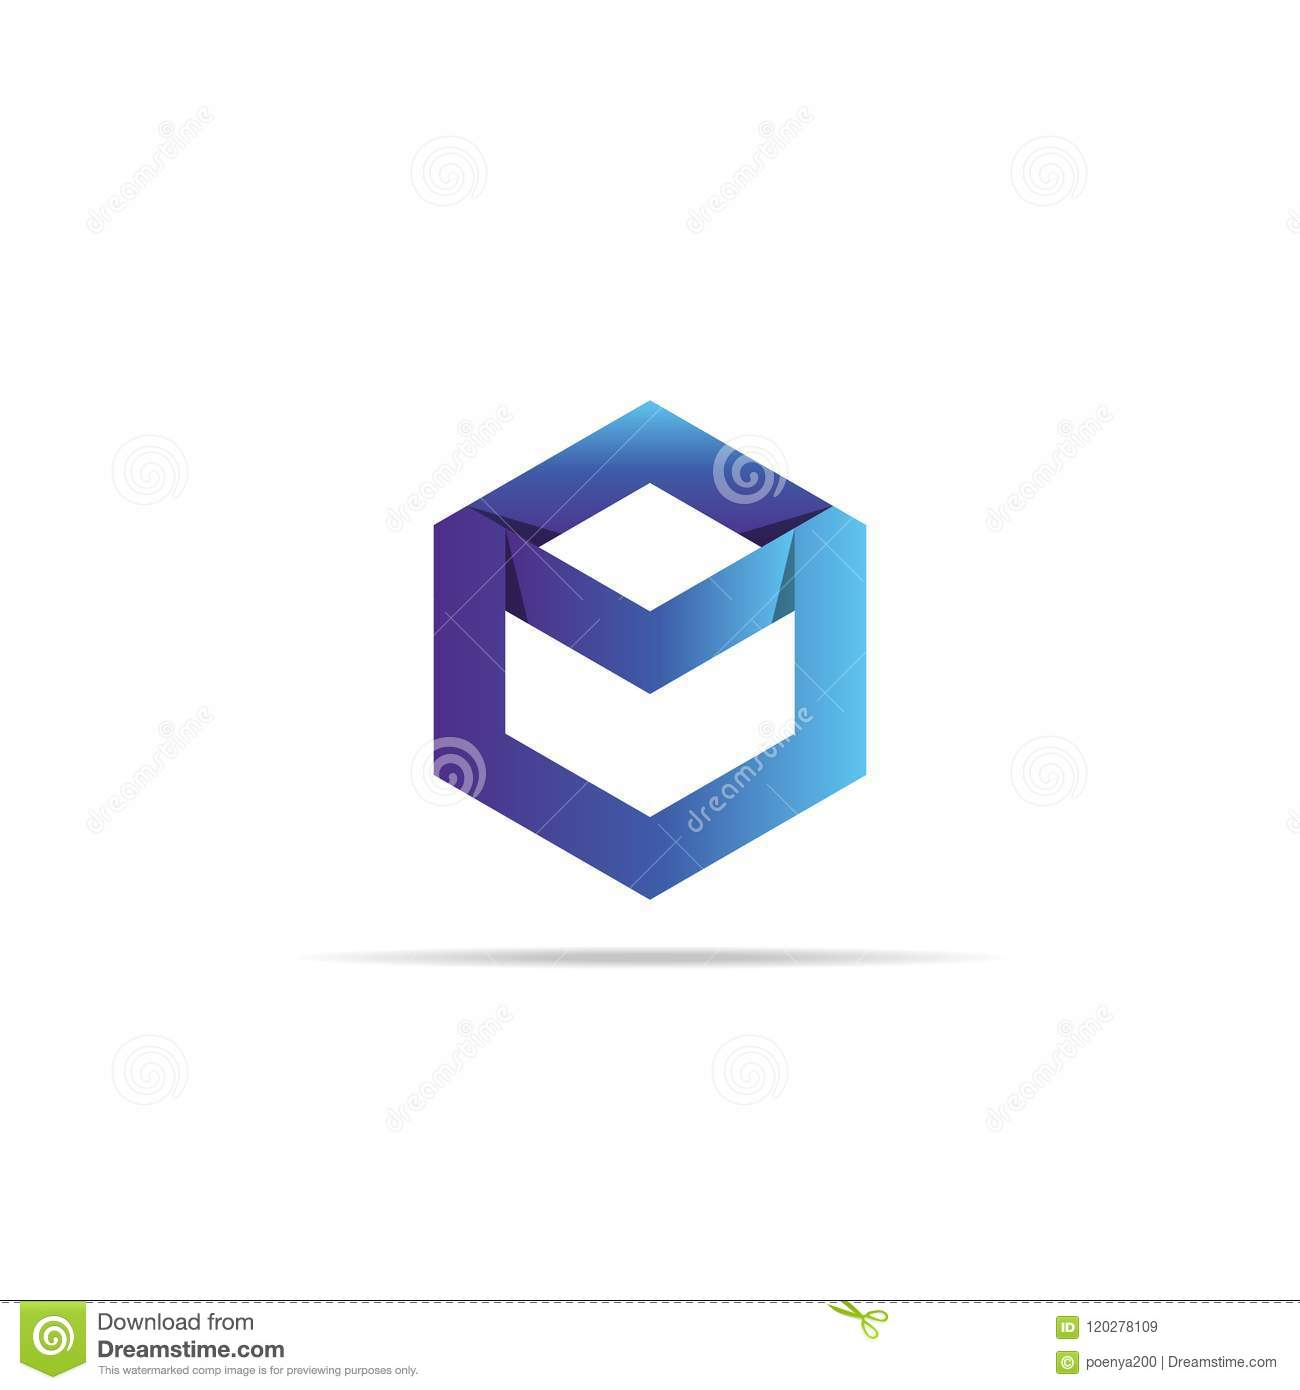 Abstract Geometric Letter M Logo Template With Infinity Hexagonal